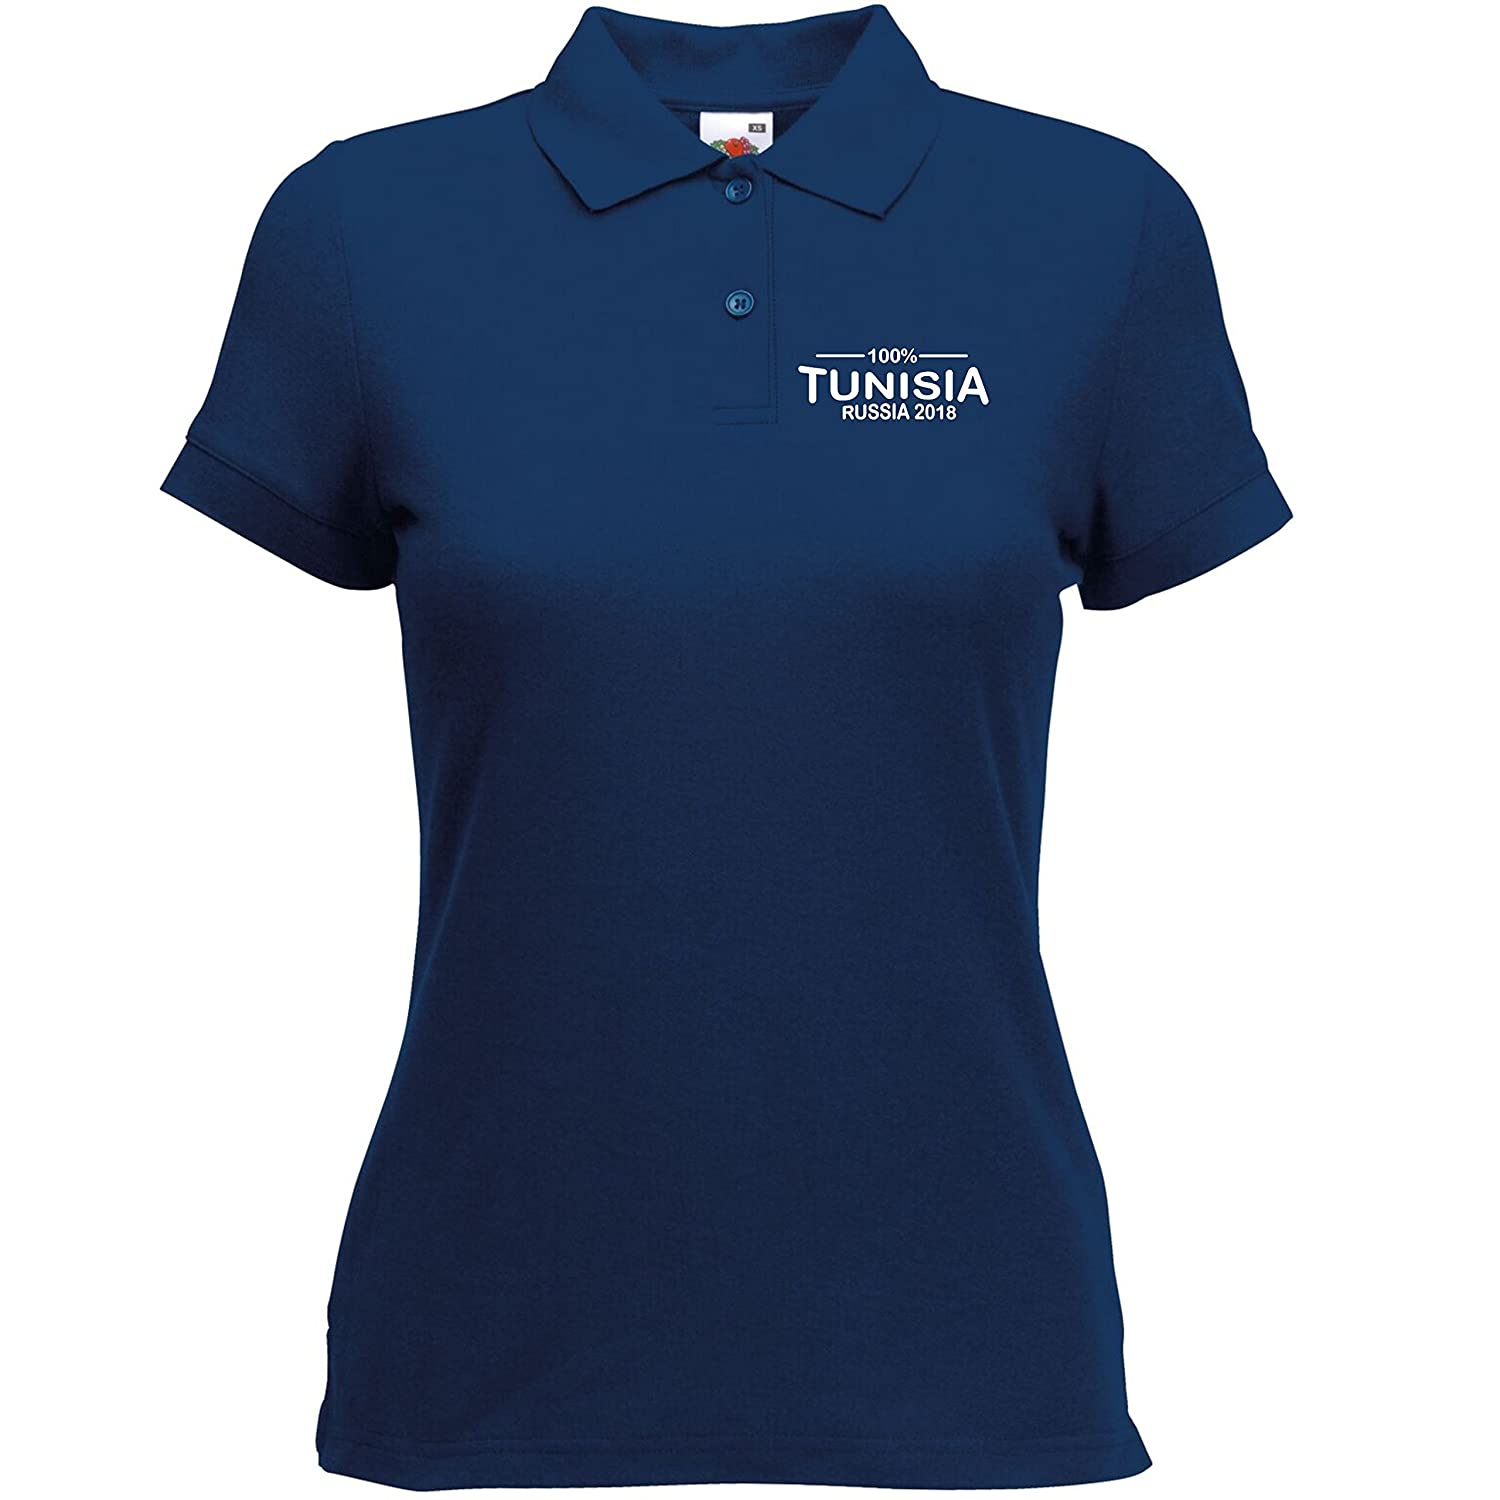 eca7953bb10 Novelty Polo's 100% Tunisia Football World Cup 2018 Polo Ladies Navy:  Amazon.co.uk: Clothing